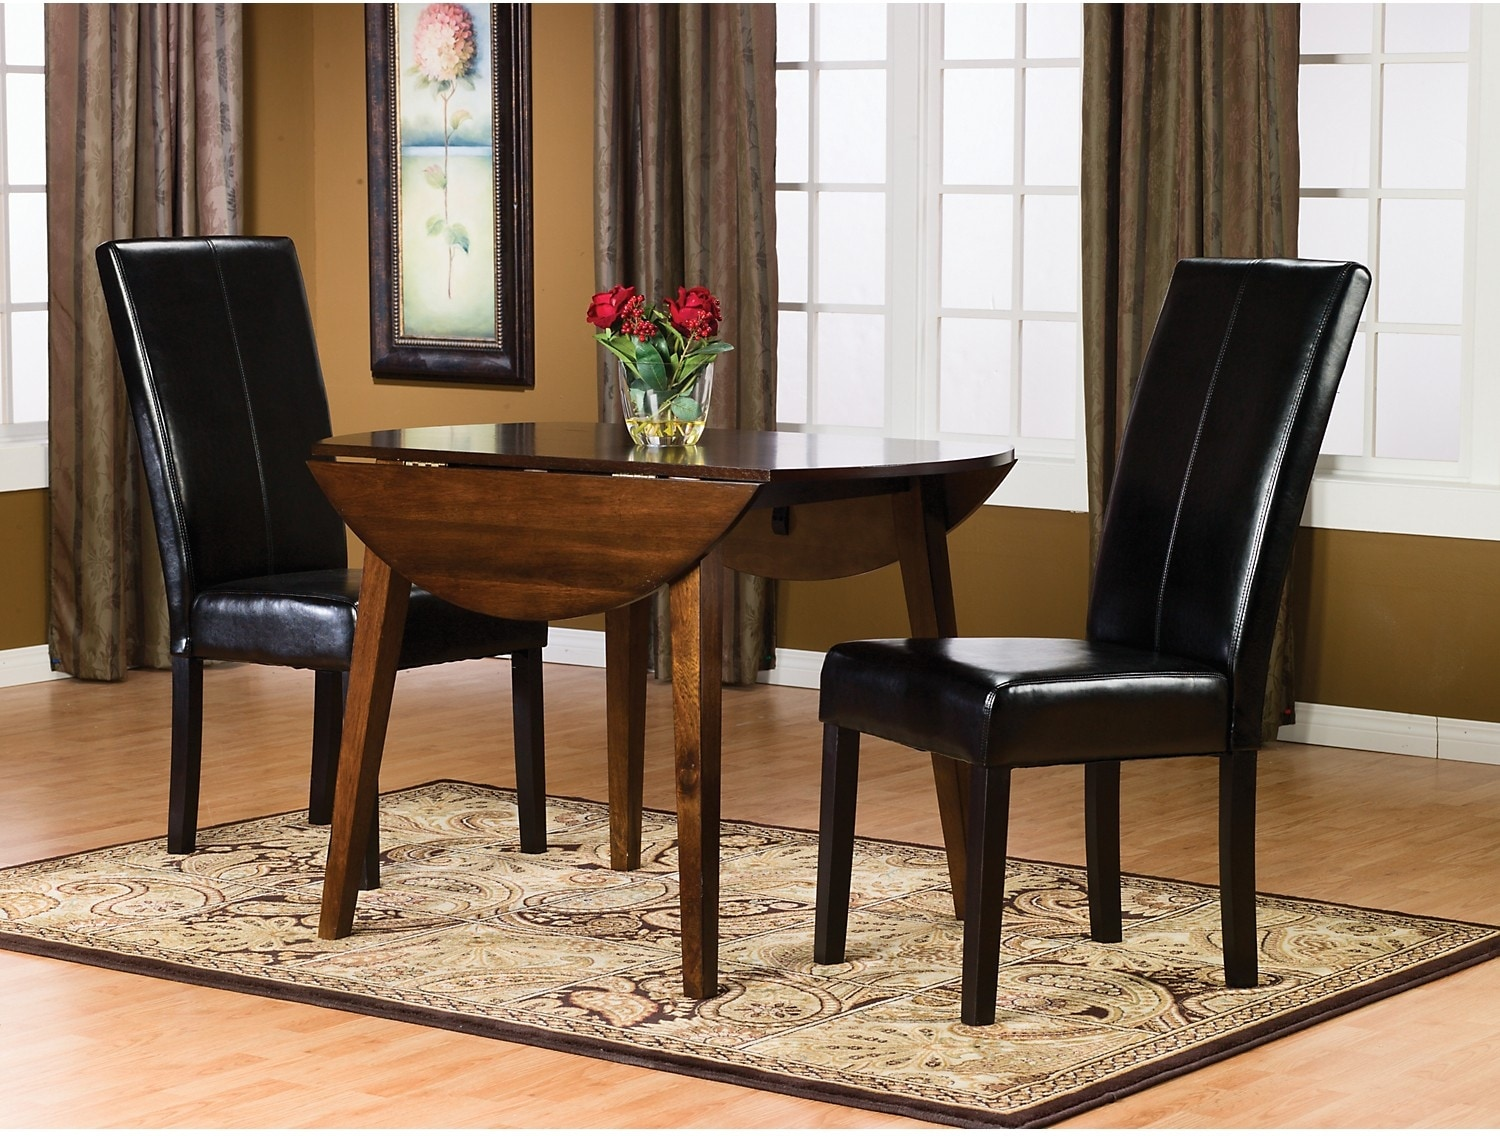 Adara 3-Piece Round Table Dining Package w/ Black Chairs